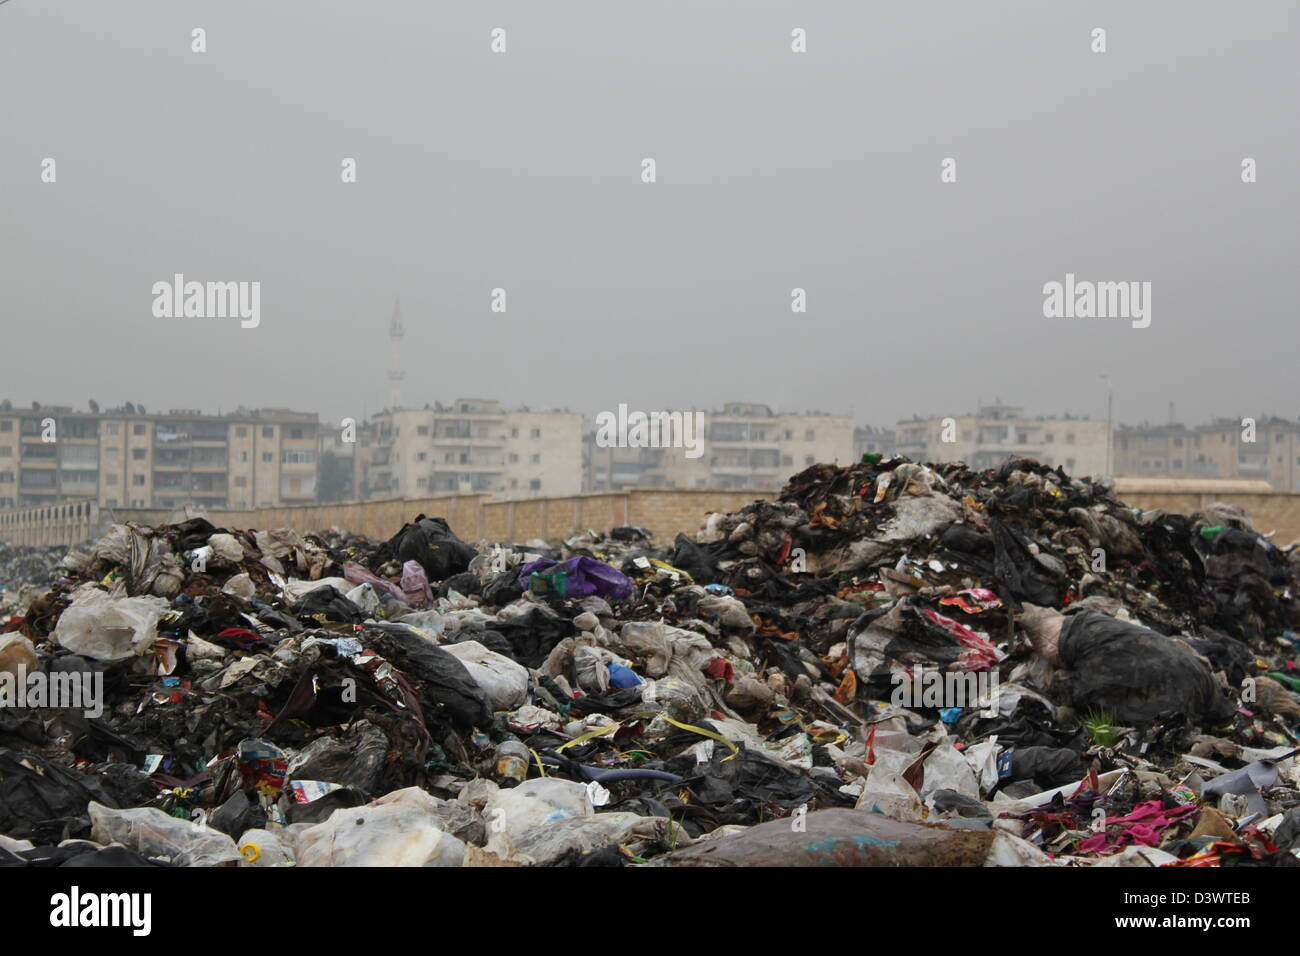 Fetid rubbish piled high in Aleppo, Syria. - Stock Image